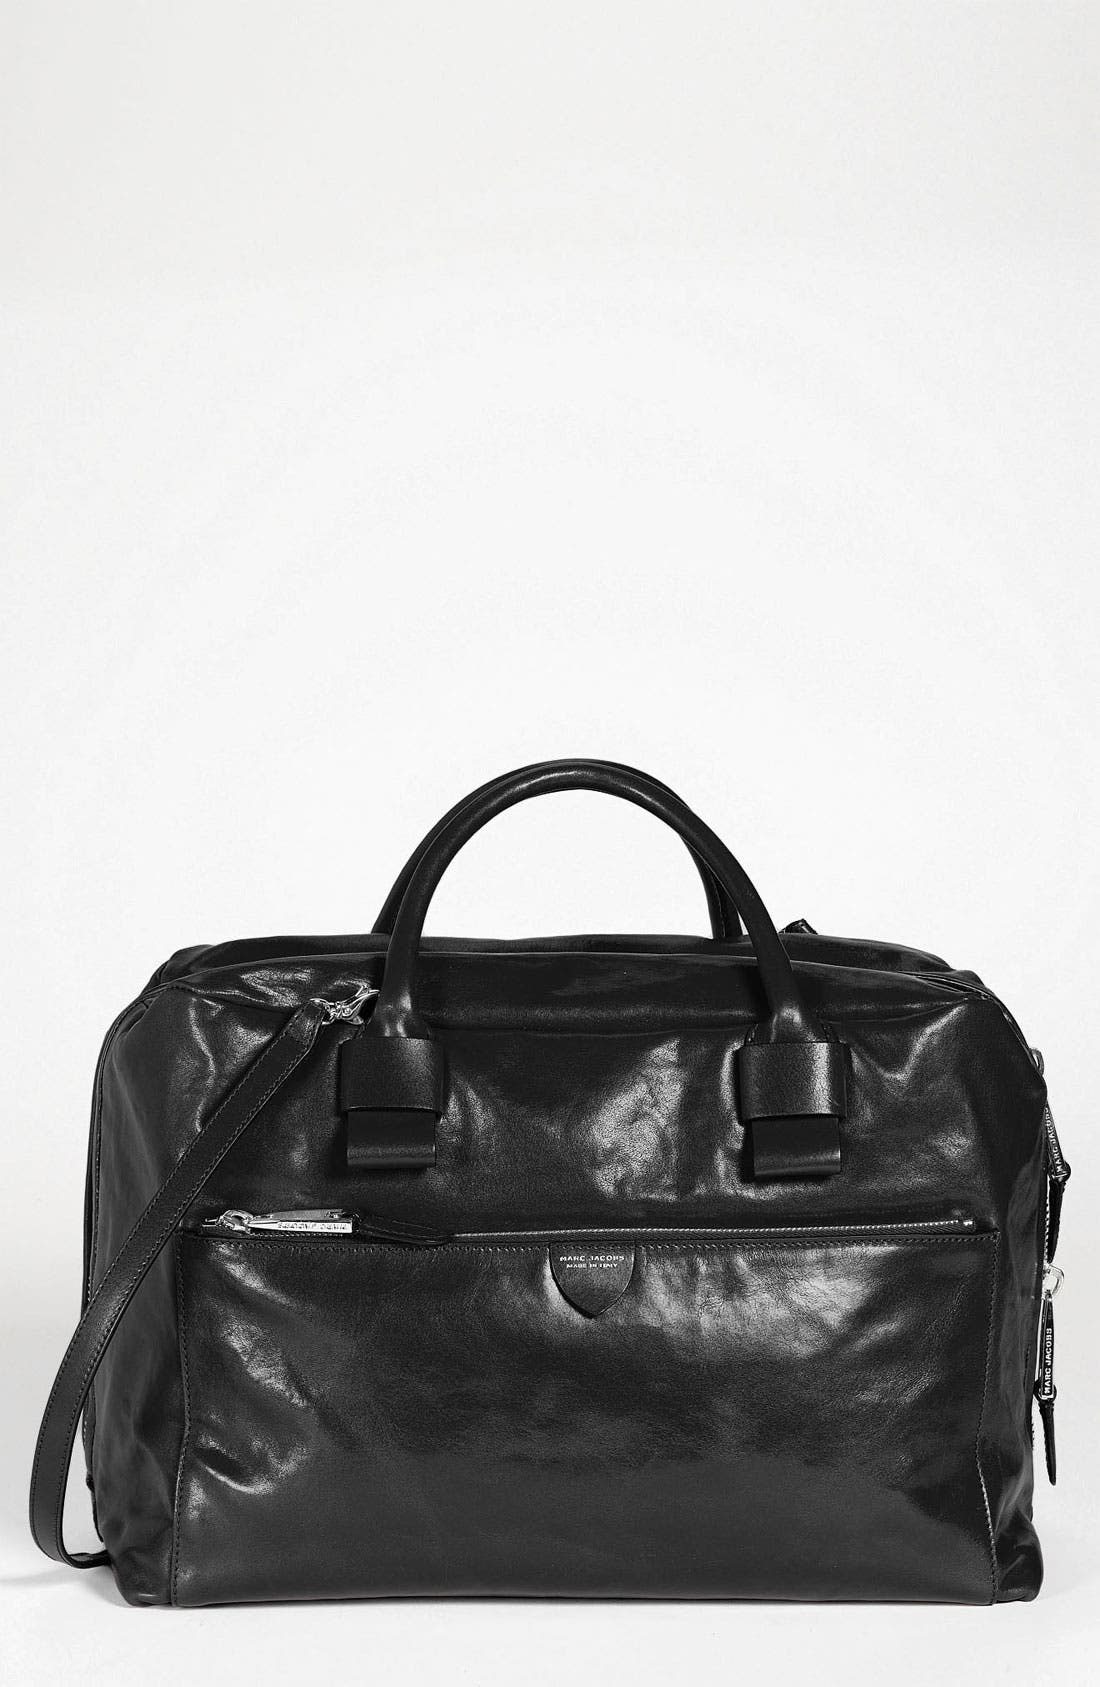 Alternate Image 1 Selected - MARC JACOBS 'Antonia'  Leather Satchel